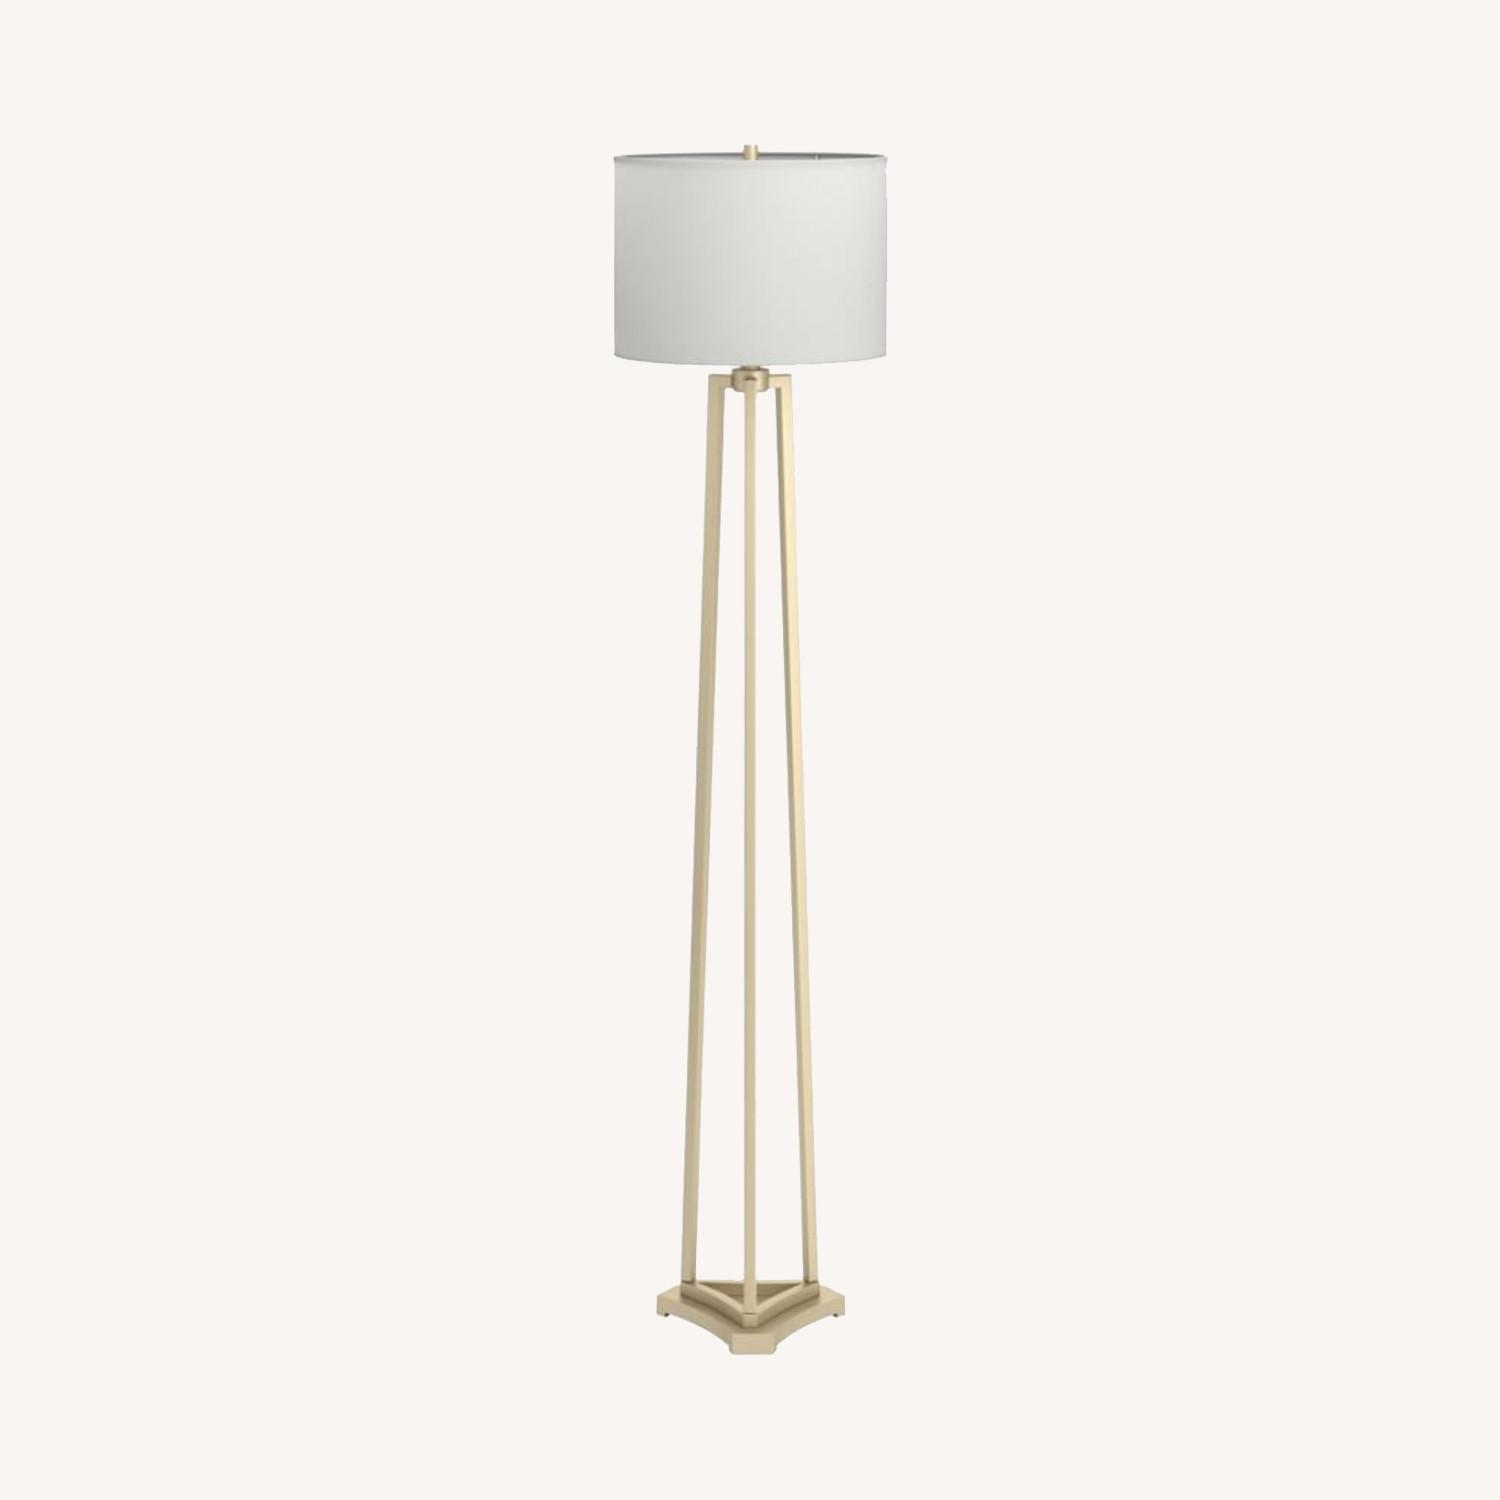 Contemporary Floor Lamp In Metal Gold Finish - image-3